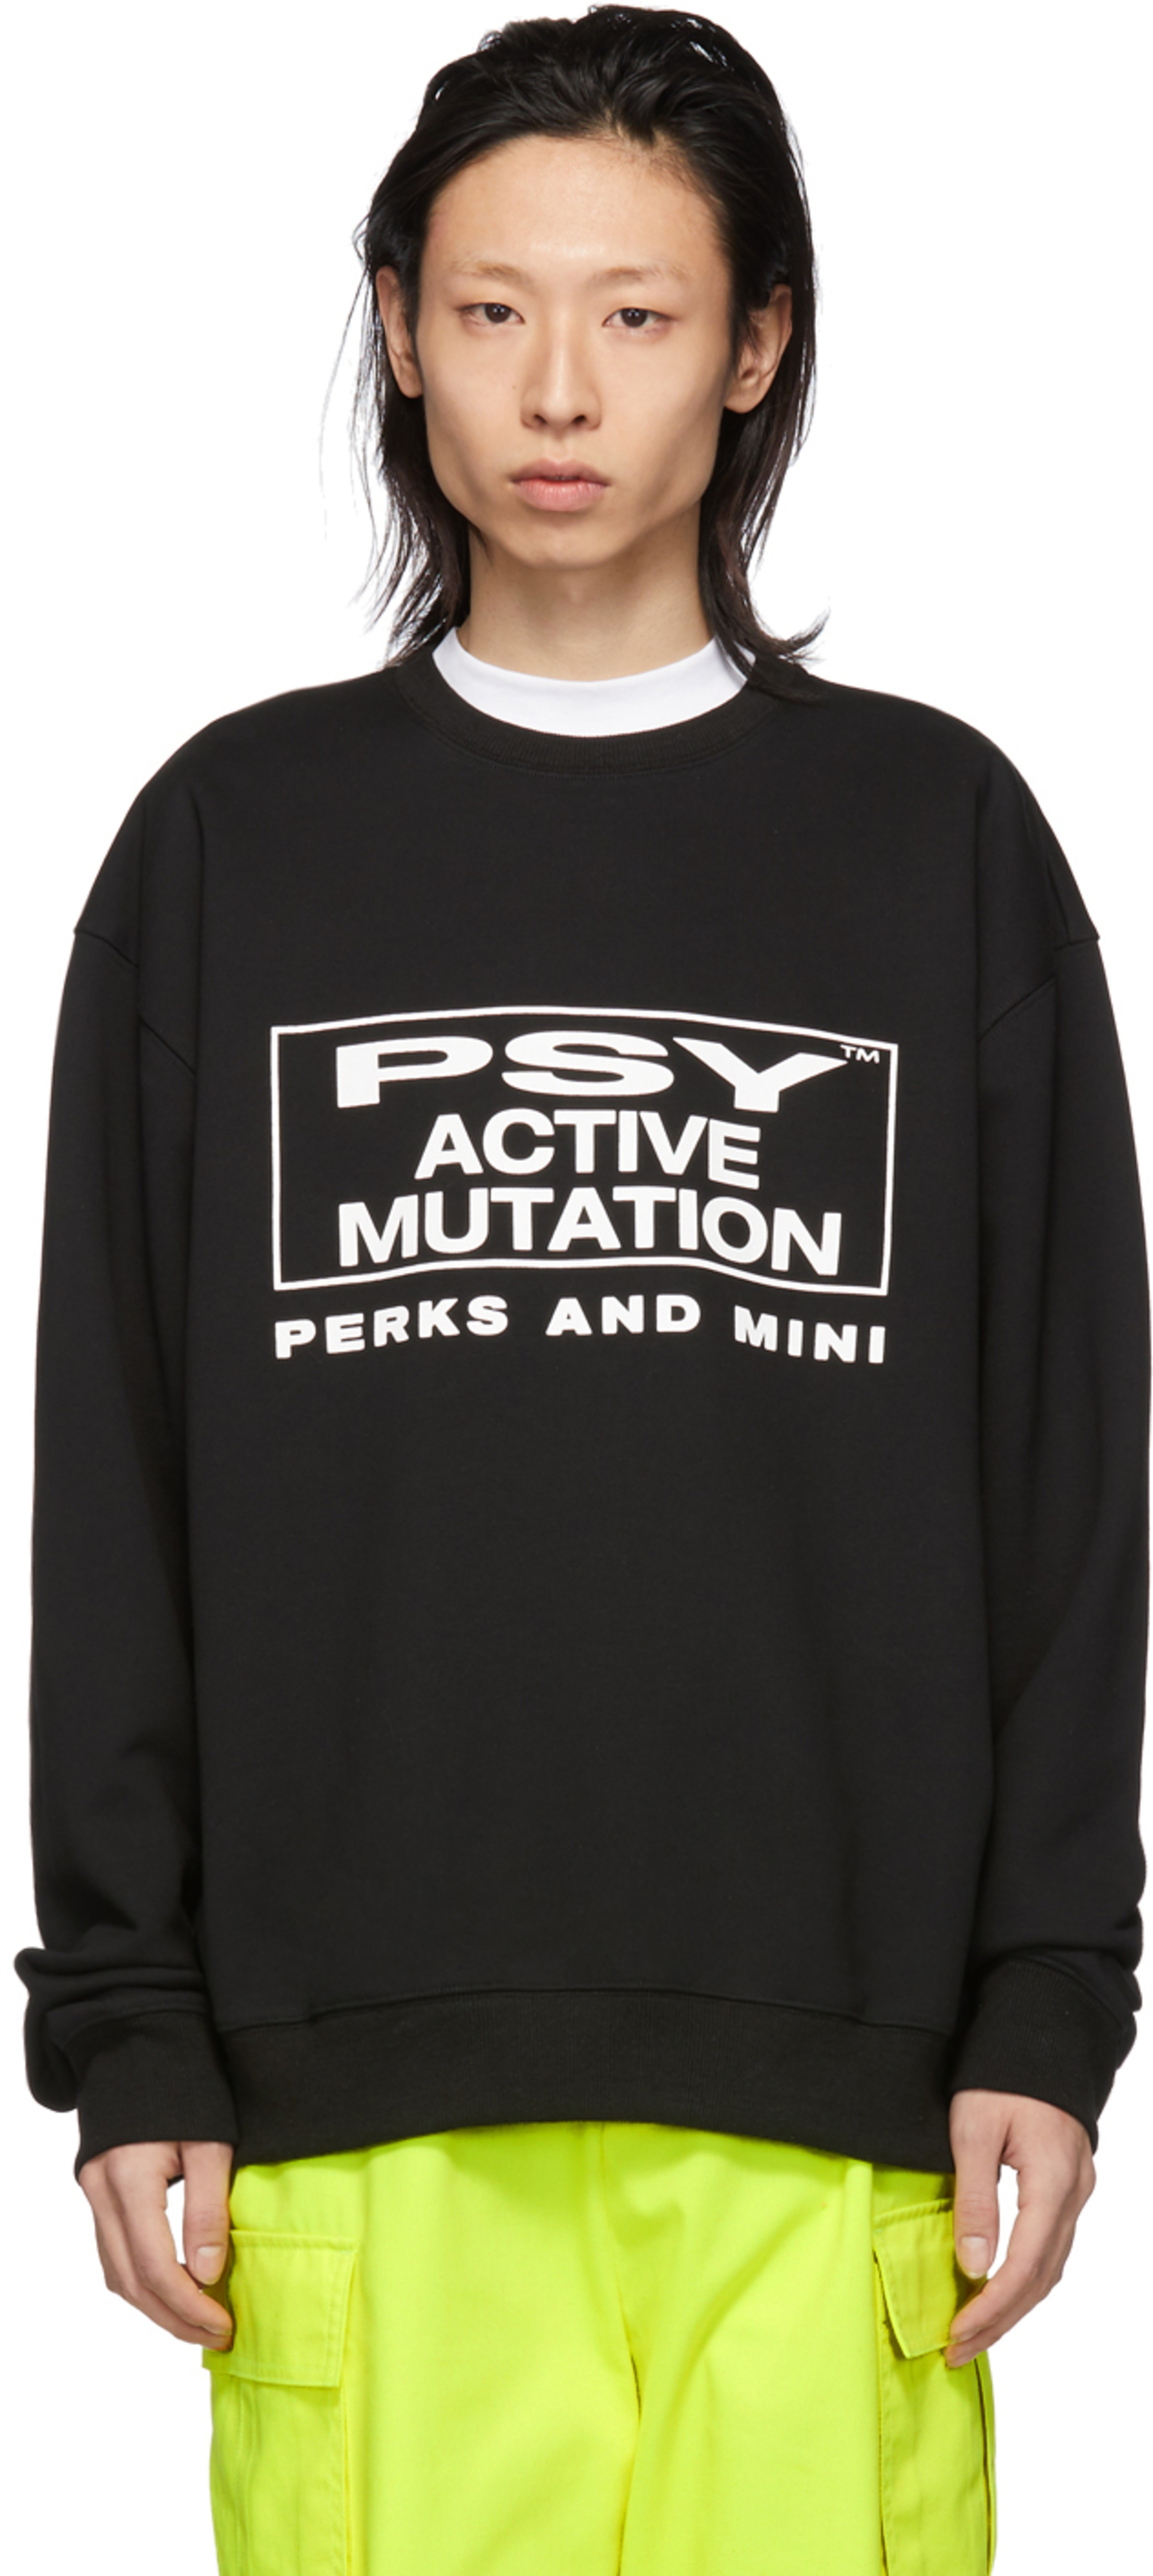 f02350e4a6c3 Perks And Mini for Men SS19 Collection